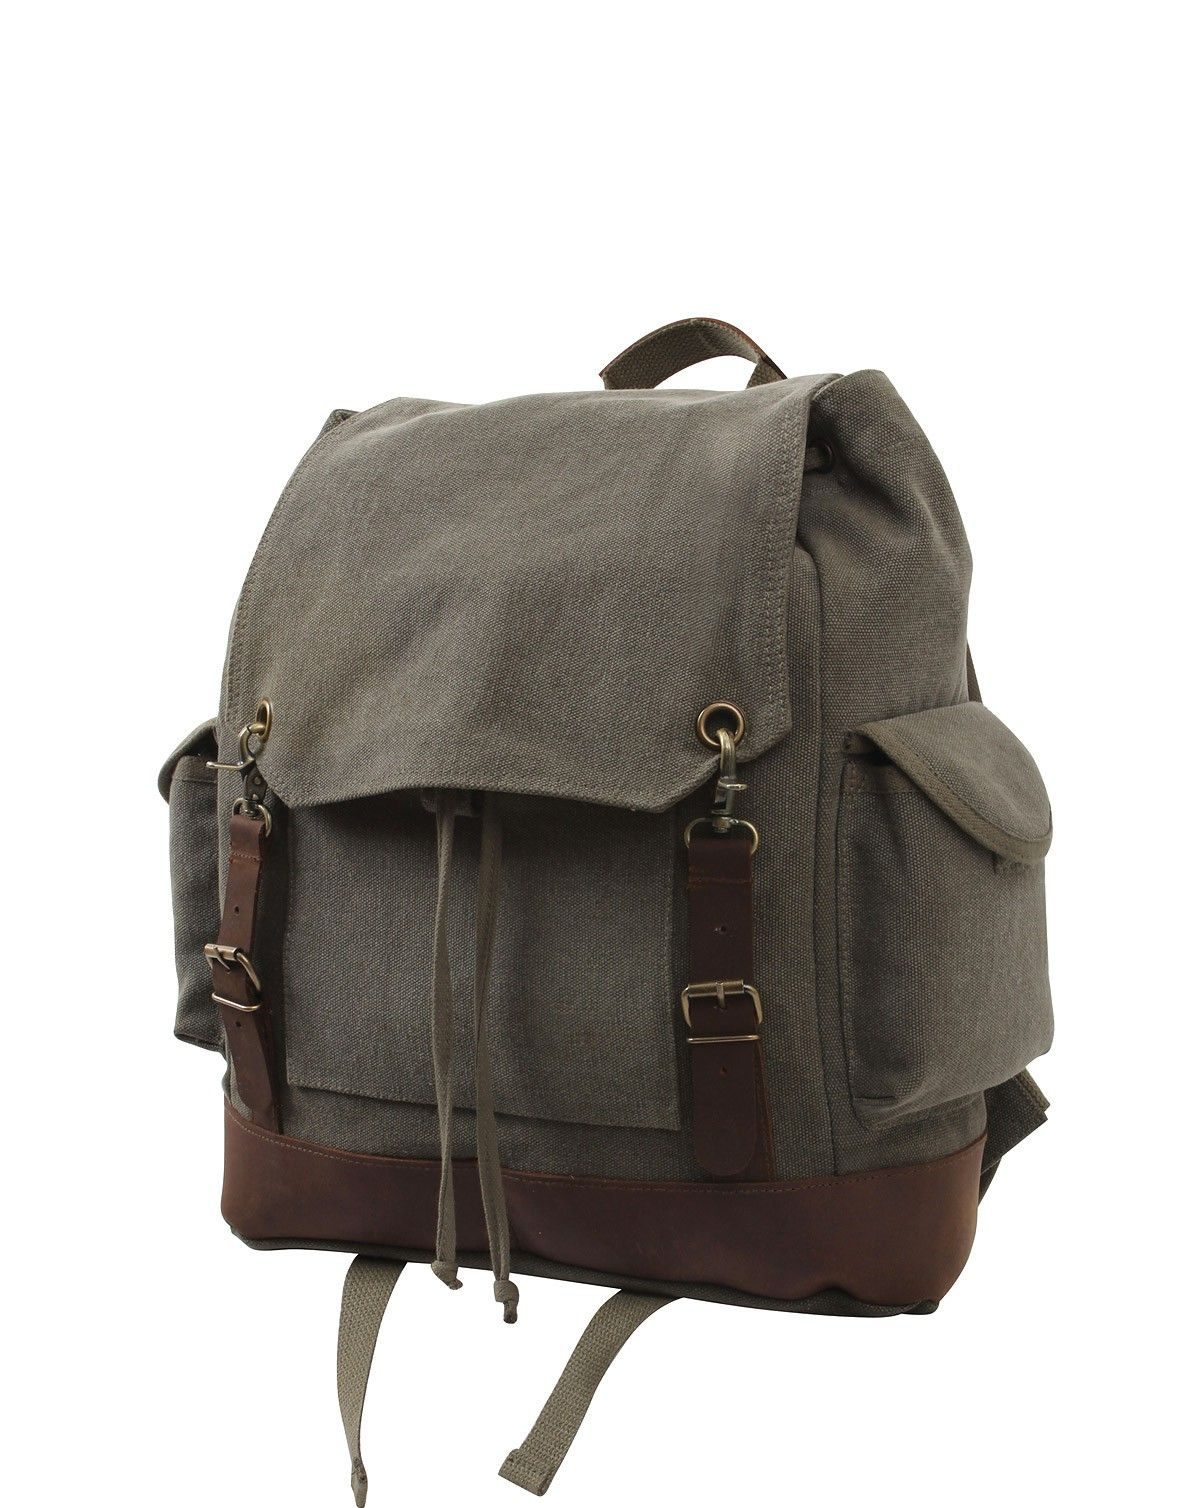 wwii messenger bag - Google Search | Backpack Inspiration ...